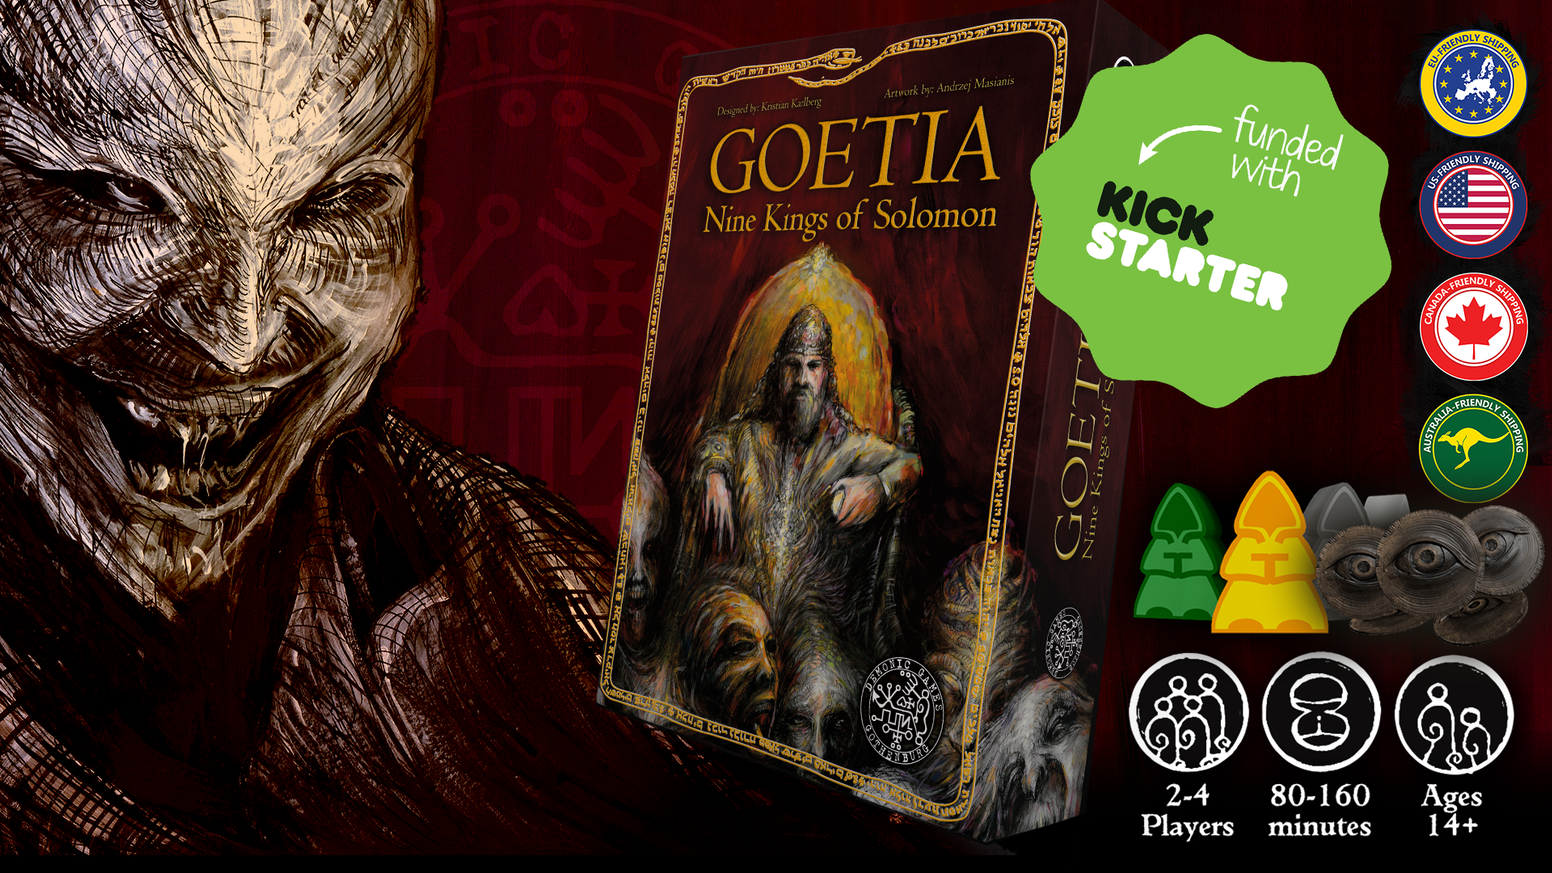 Goetia: Nine Kings of Solomon is a DARK EURO GAME where players will contact, conjure and worship real Goetic Demons!